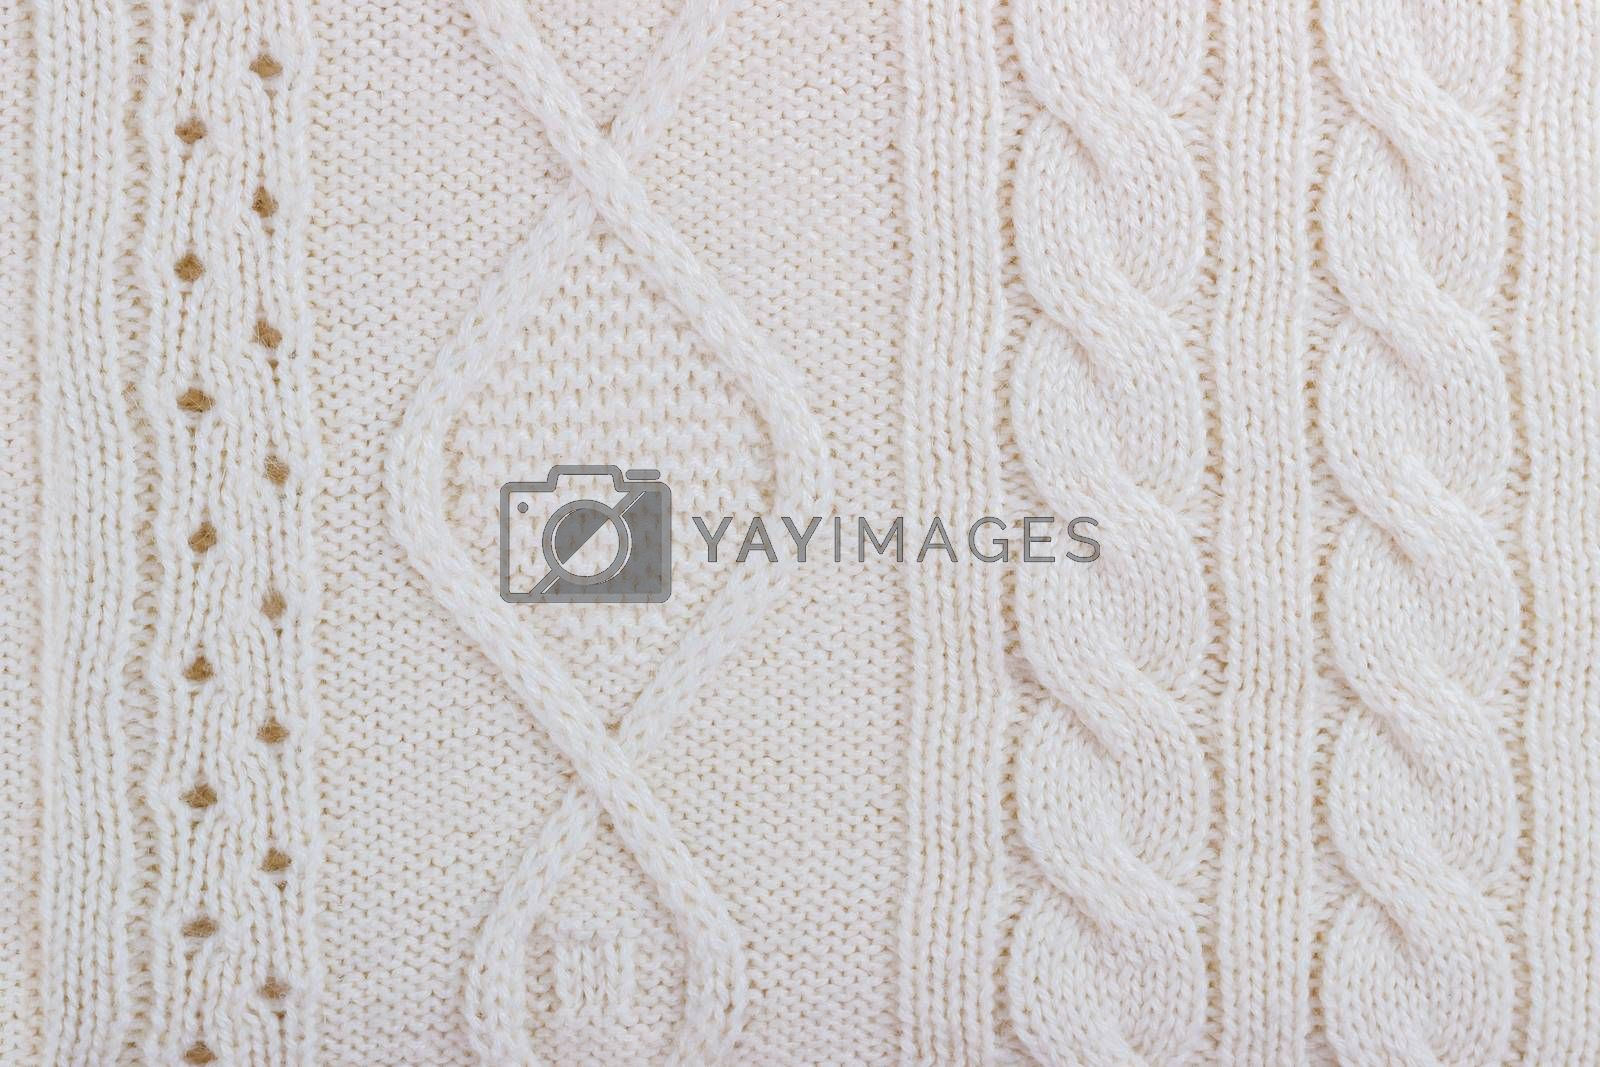 Royalty free image of Texture of knitted woolen fabric by Lana_M